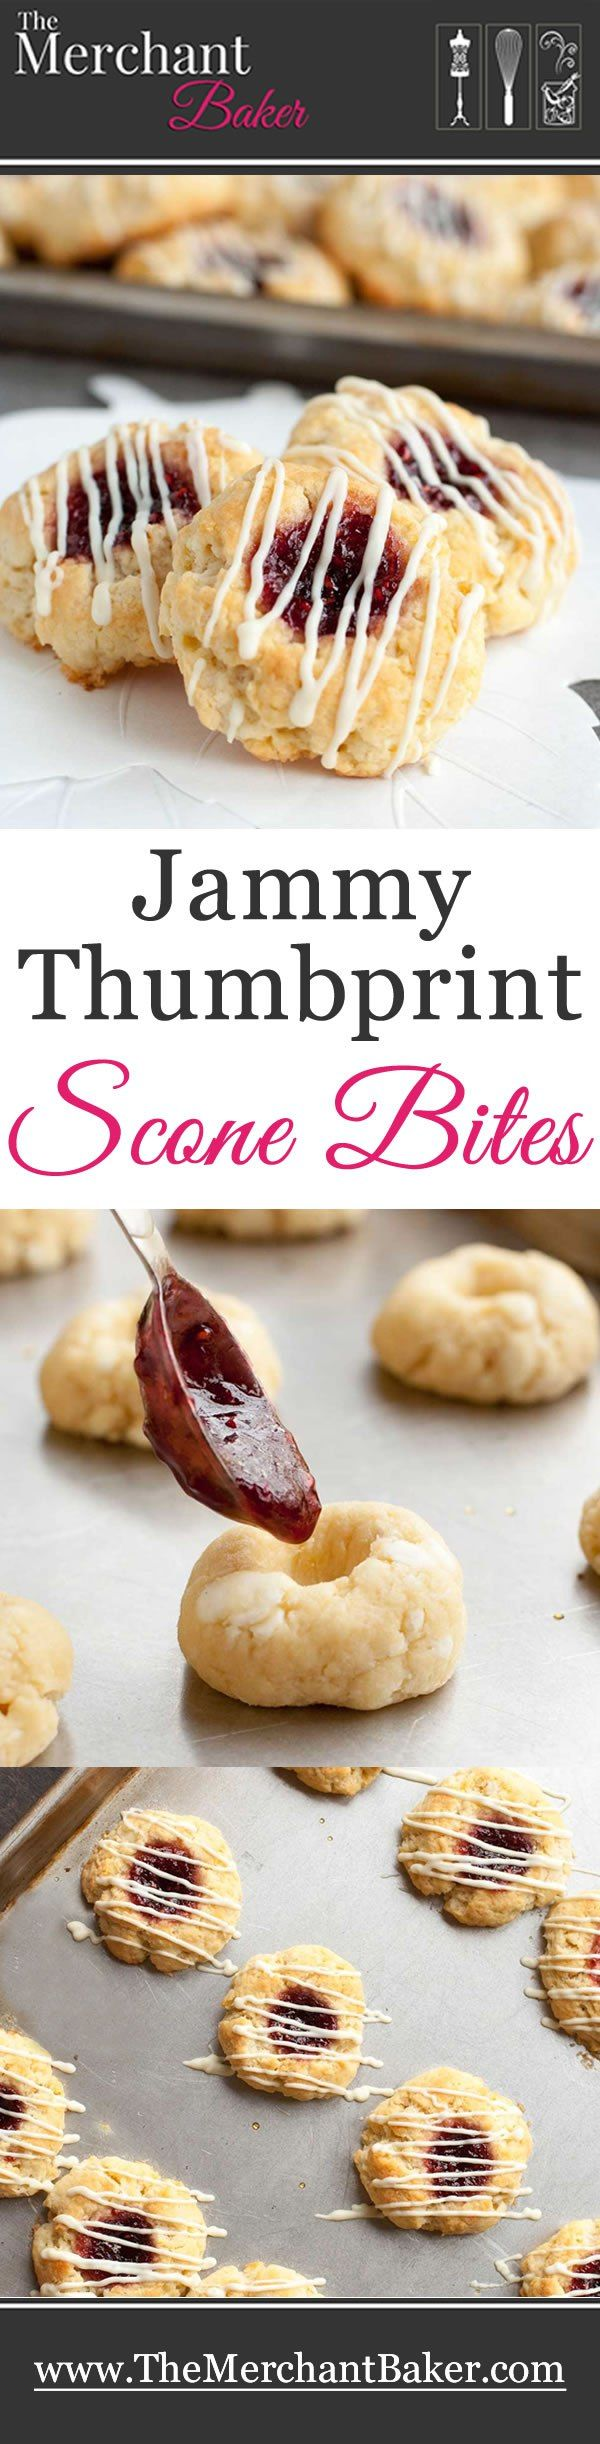 Jammy Thumbprint Scone Bites - The Merchant Baker